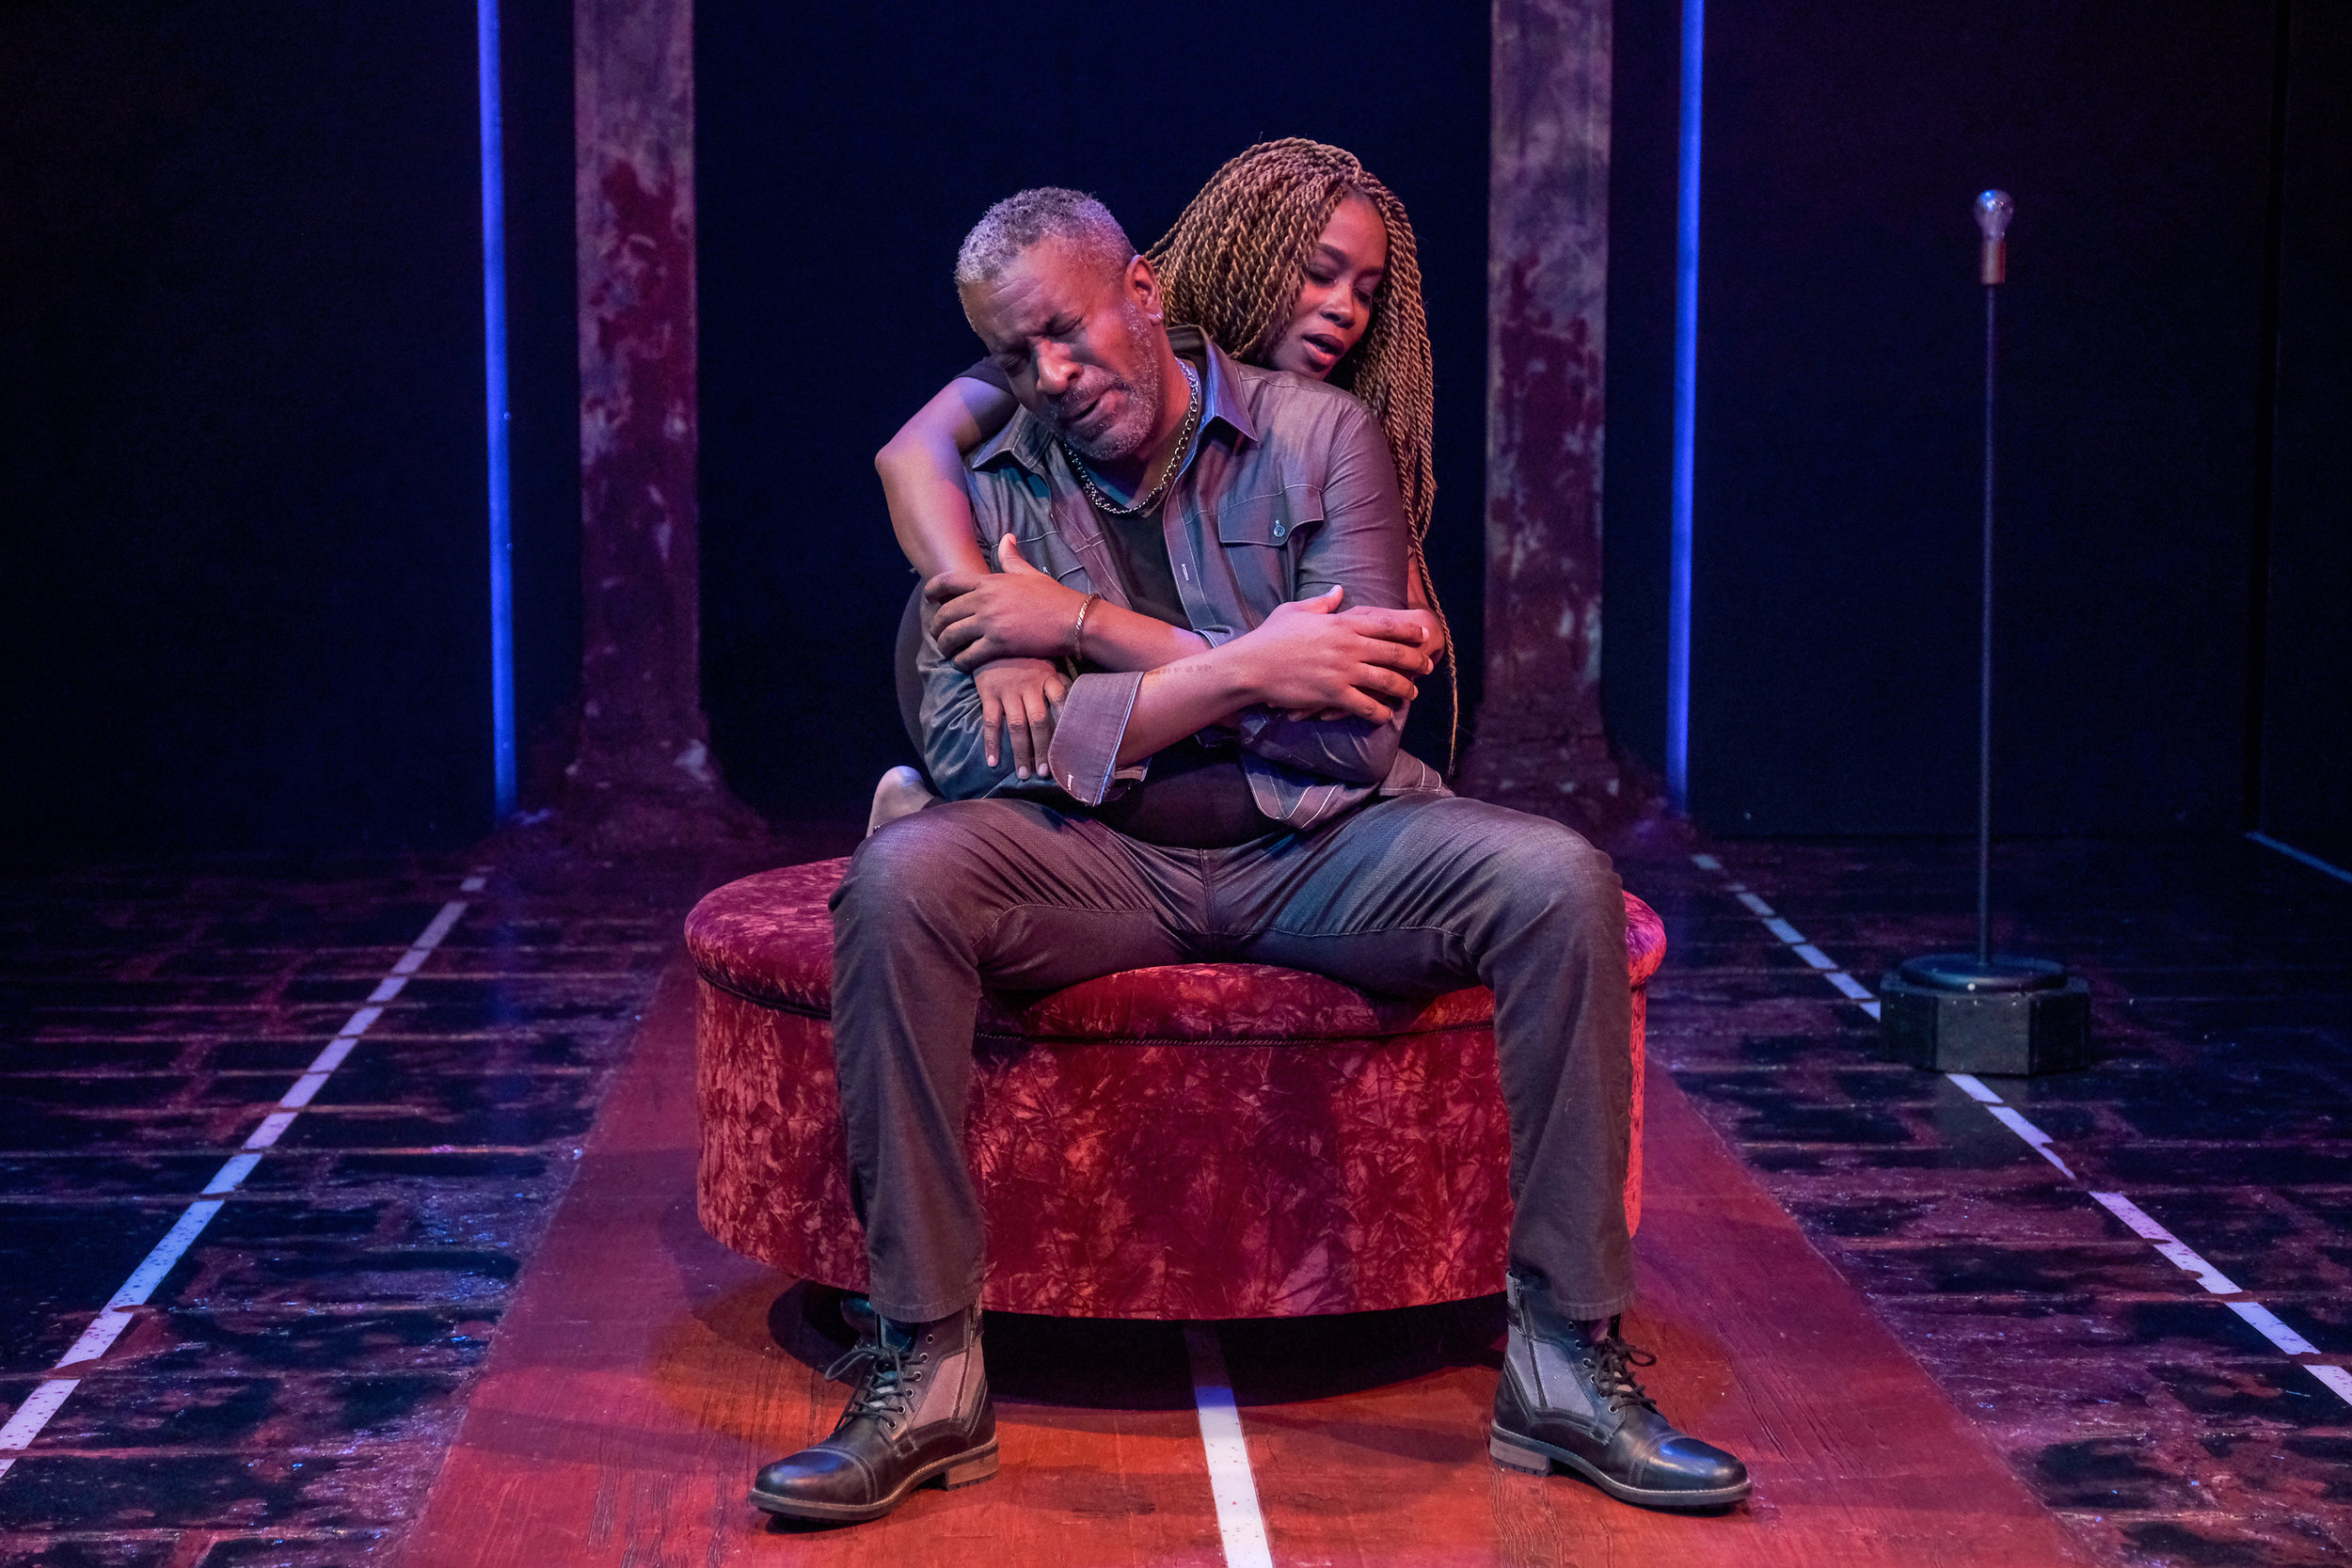 Roderick Sanford and CHANEL in The Ballad of Klook and Vinette at ZACH Theatre. Photos by Kirk Tuck